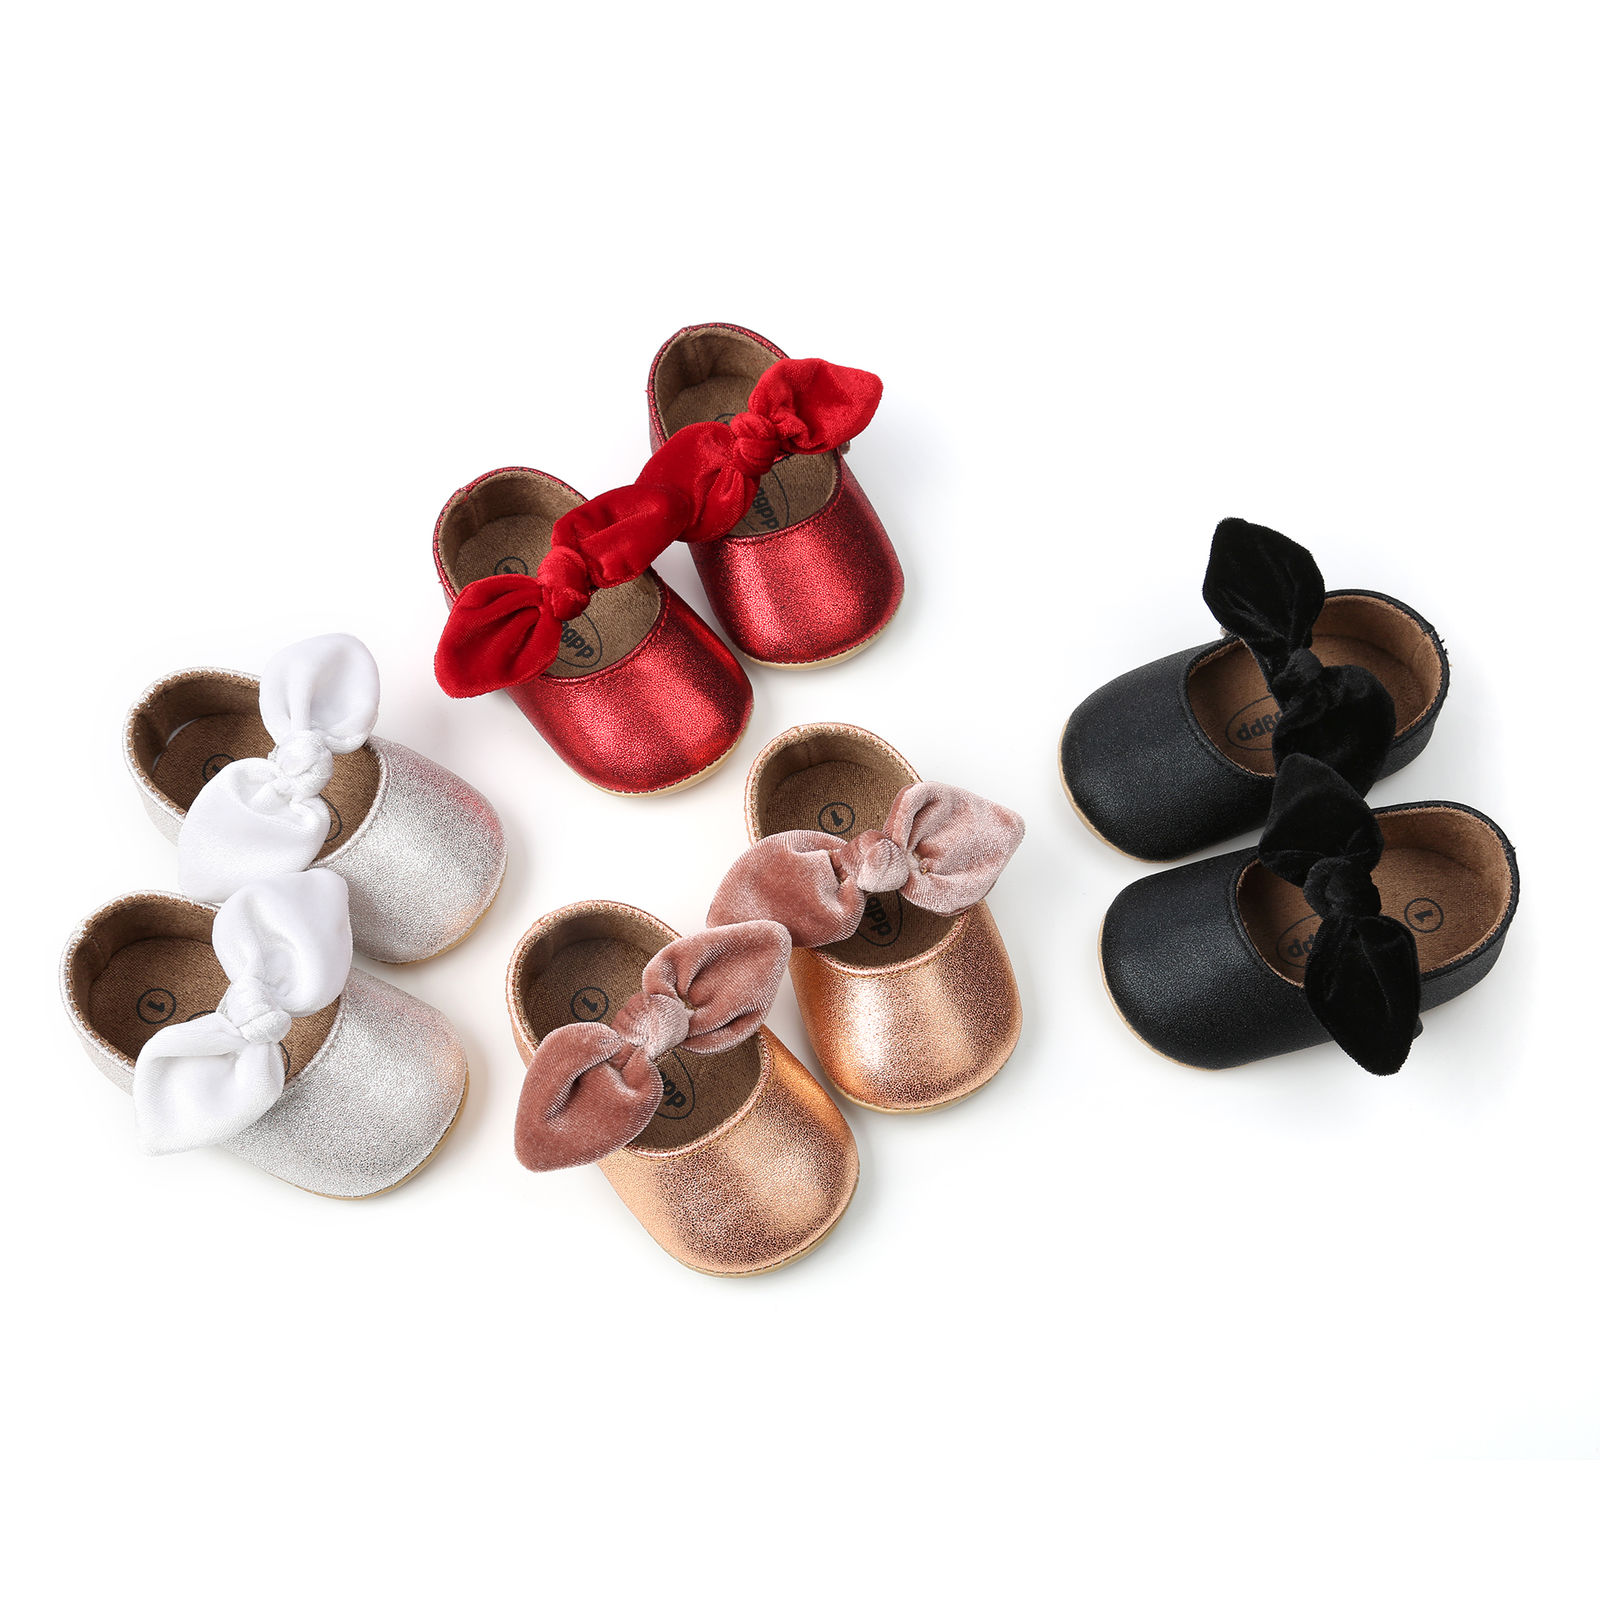 0-18M Baby Girl Shoes PU Leather Newborn Girl Moccasins Moccs Shoes Bow Fringe Soft Soled Non-slip Footwear Crib Shoes